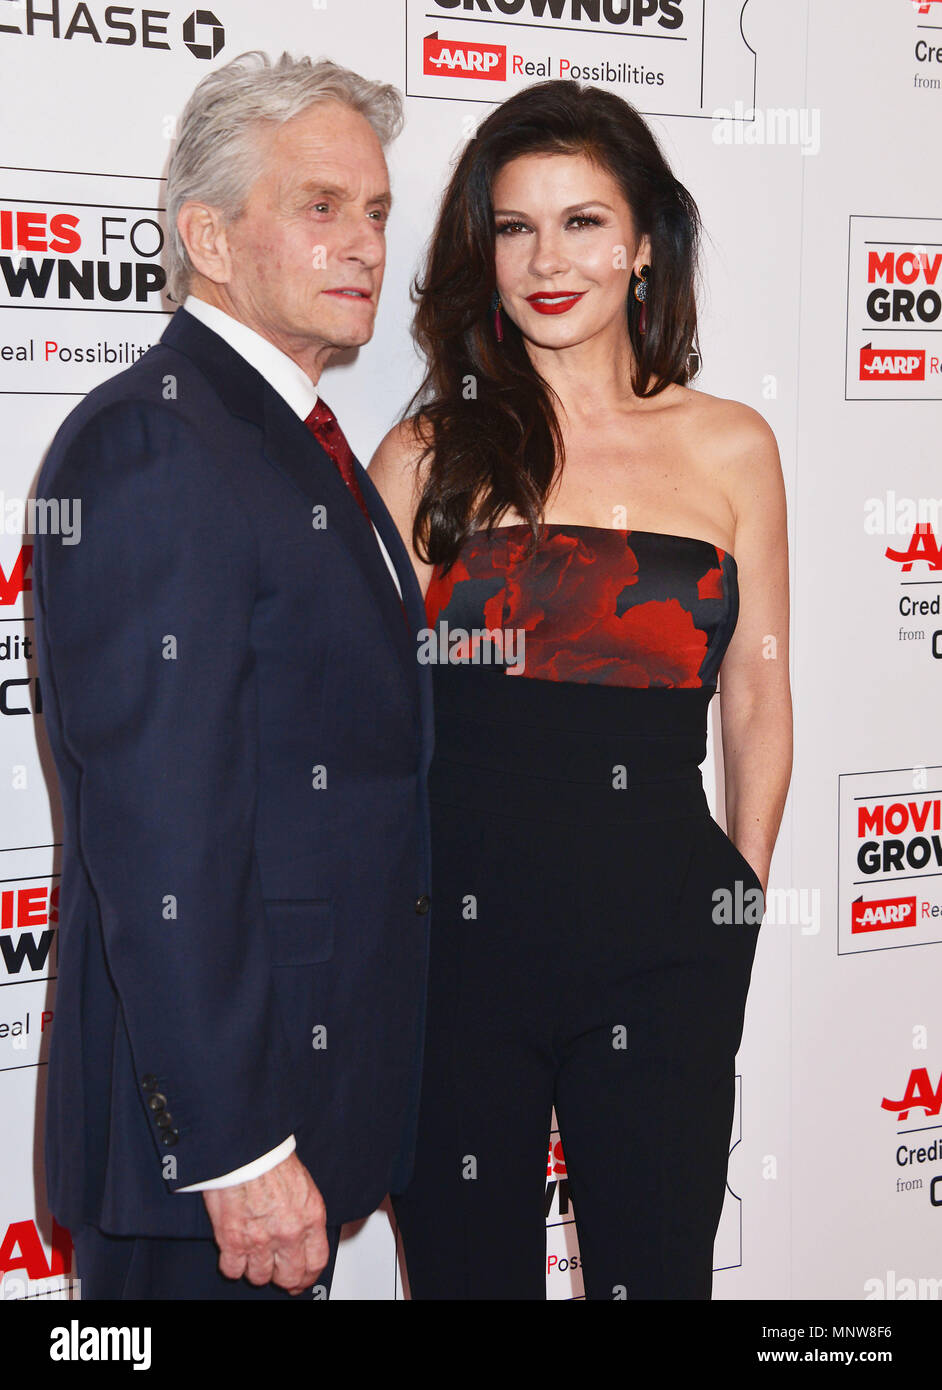 a_ Michael Douglas, Catherine Zeta Jones 005 at the Movies For Grow Ups - AARP - at the Beverly Wilshire Hotel in Los Angeles. February 8, 2016.a_ Michael Douglas, Catherine Zeta Jones 005 ------------- Red Carpet Event, Vertical, USA, Film Industry, Celebrities,  Photography, Bestof, Arts Culture and Entertainment, Topix Celebrities fashion /  Vertical, Best of, Event in Hollywood Life - California,  Red Carpet and backstage, USA, Film Industry, Celebrities,  movie celebrities, TV celebrities, Music celebrities, Photography, Bestof, Arts Culture and Entertainment,  Topix, vertical,  family fr - Stock Image